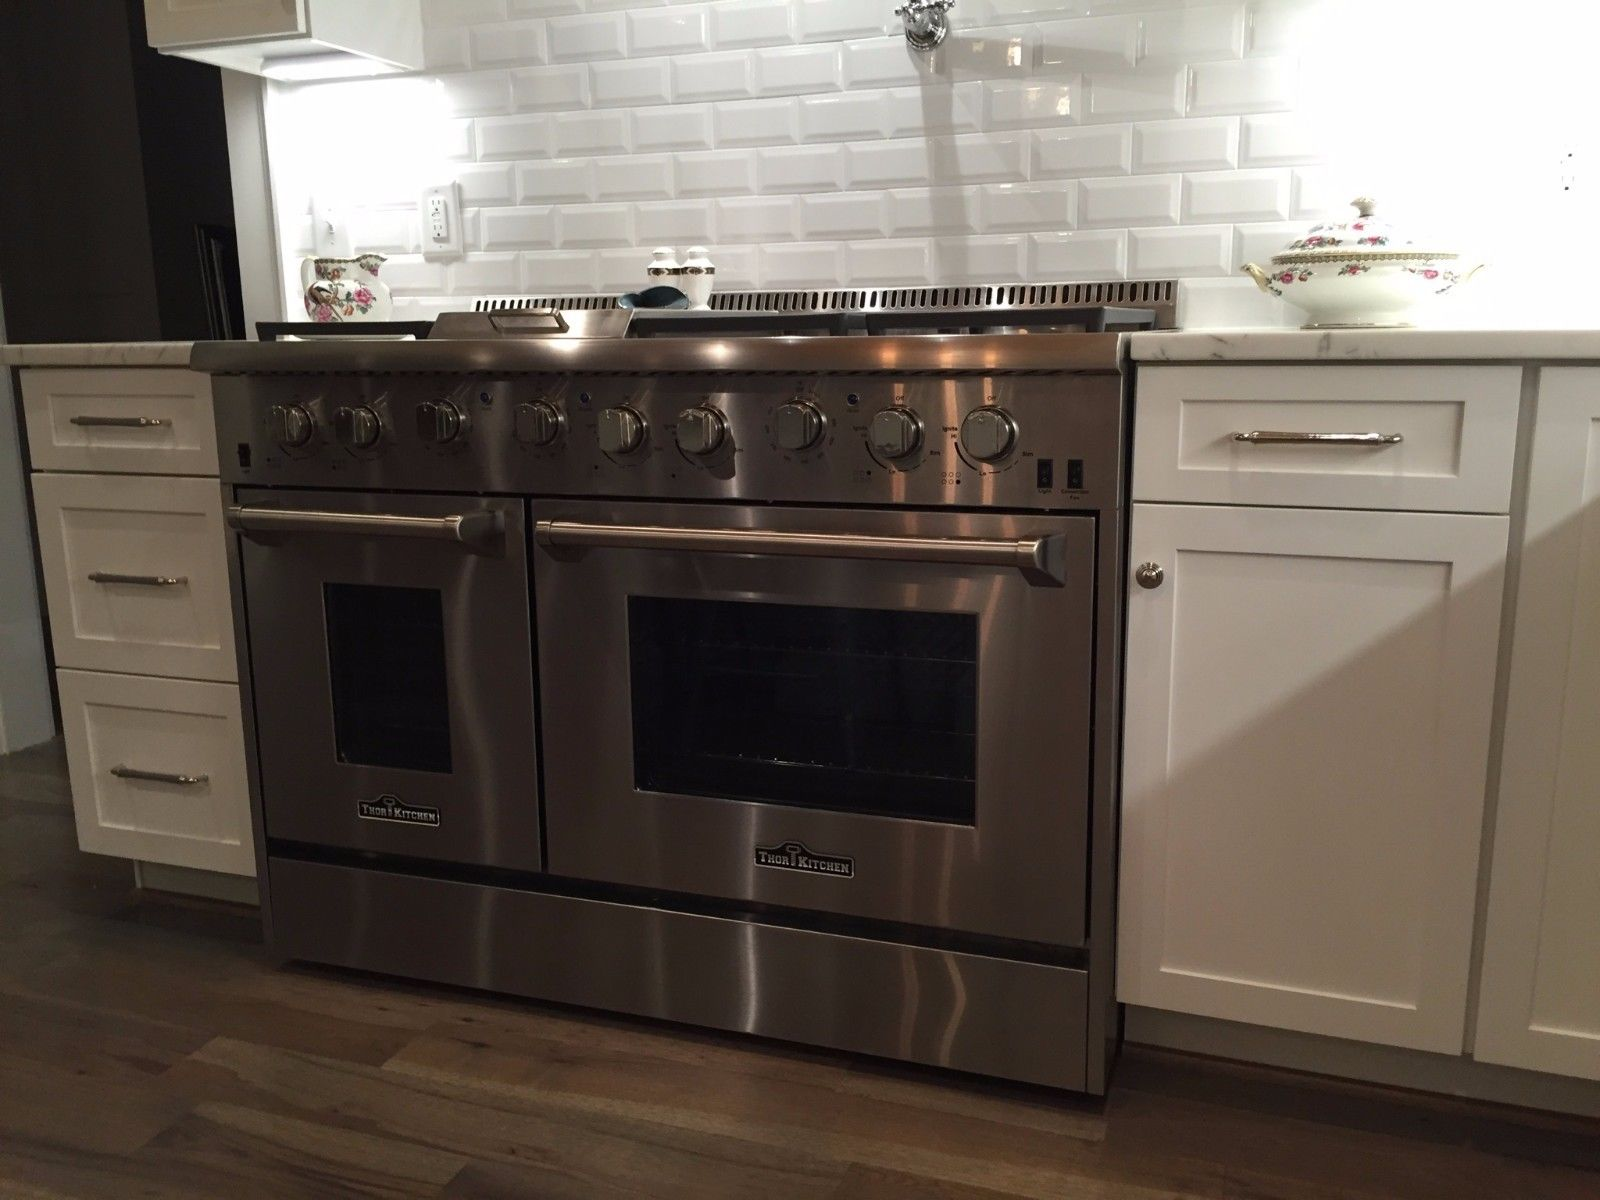 stove difference kitchen range oven watch between youtube and